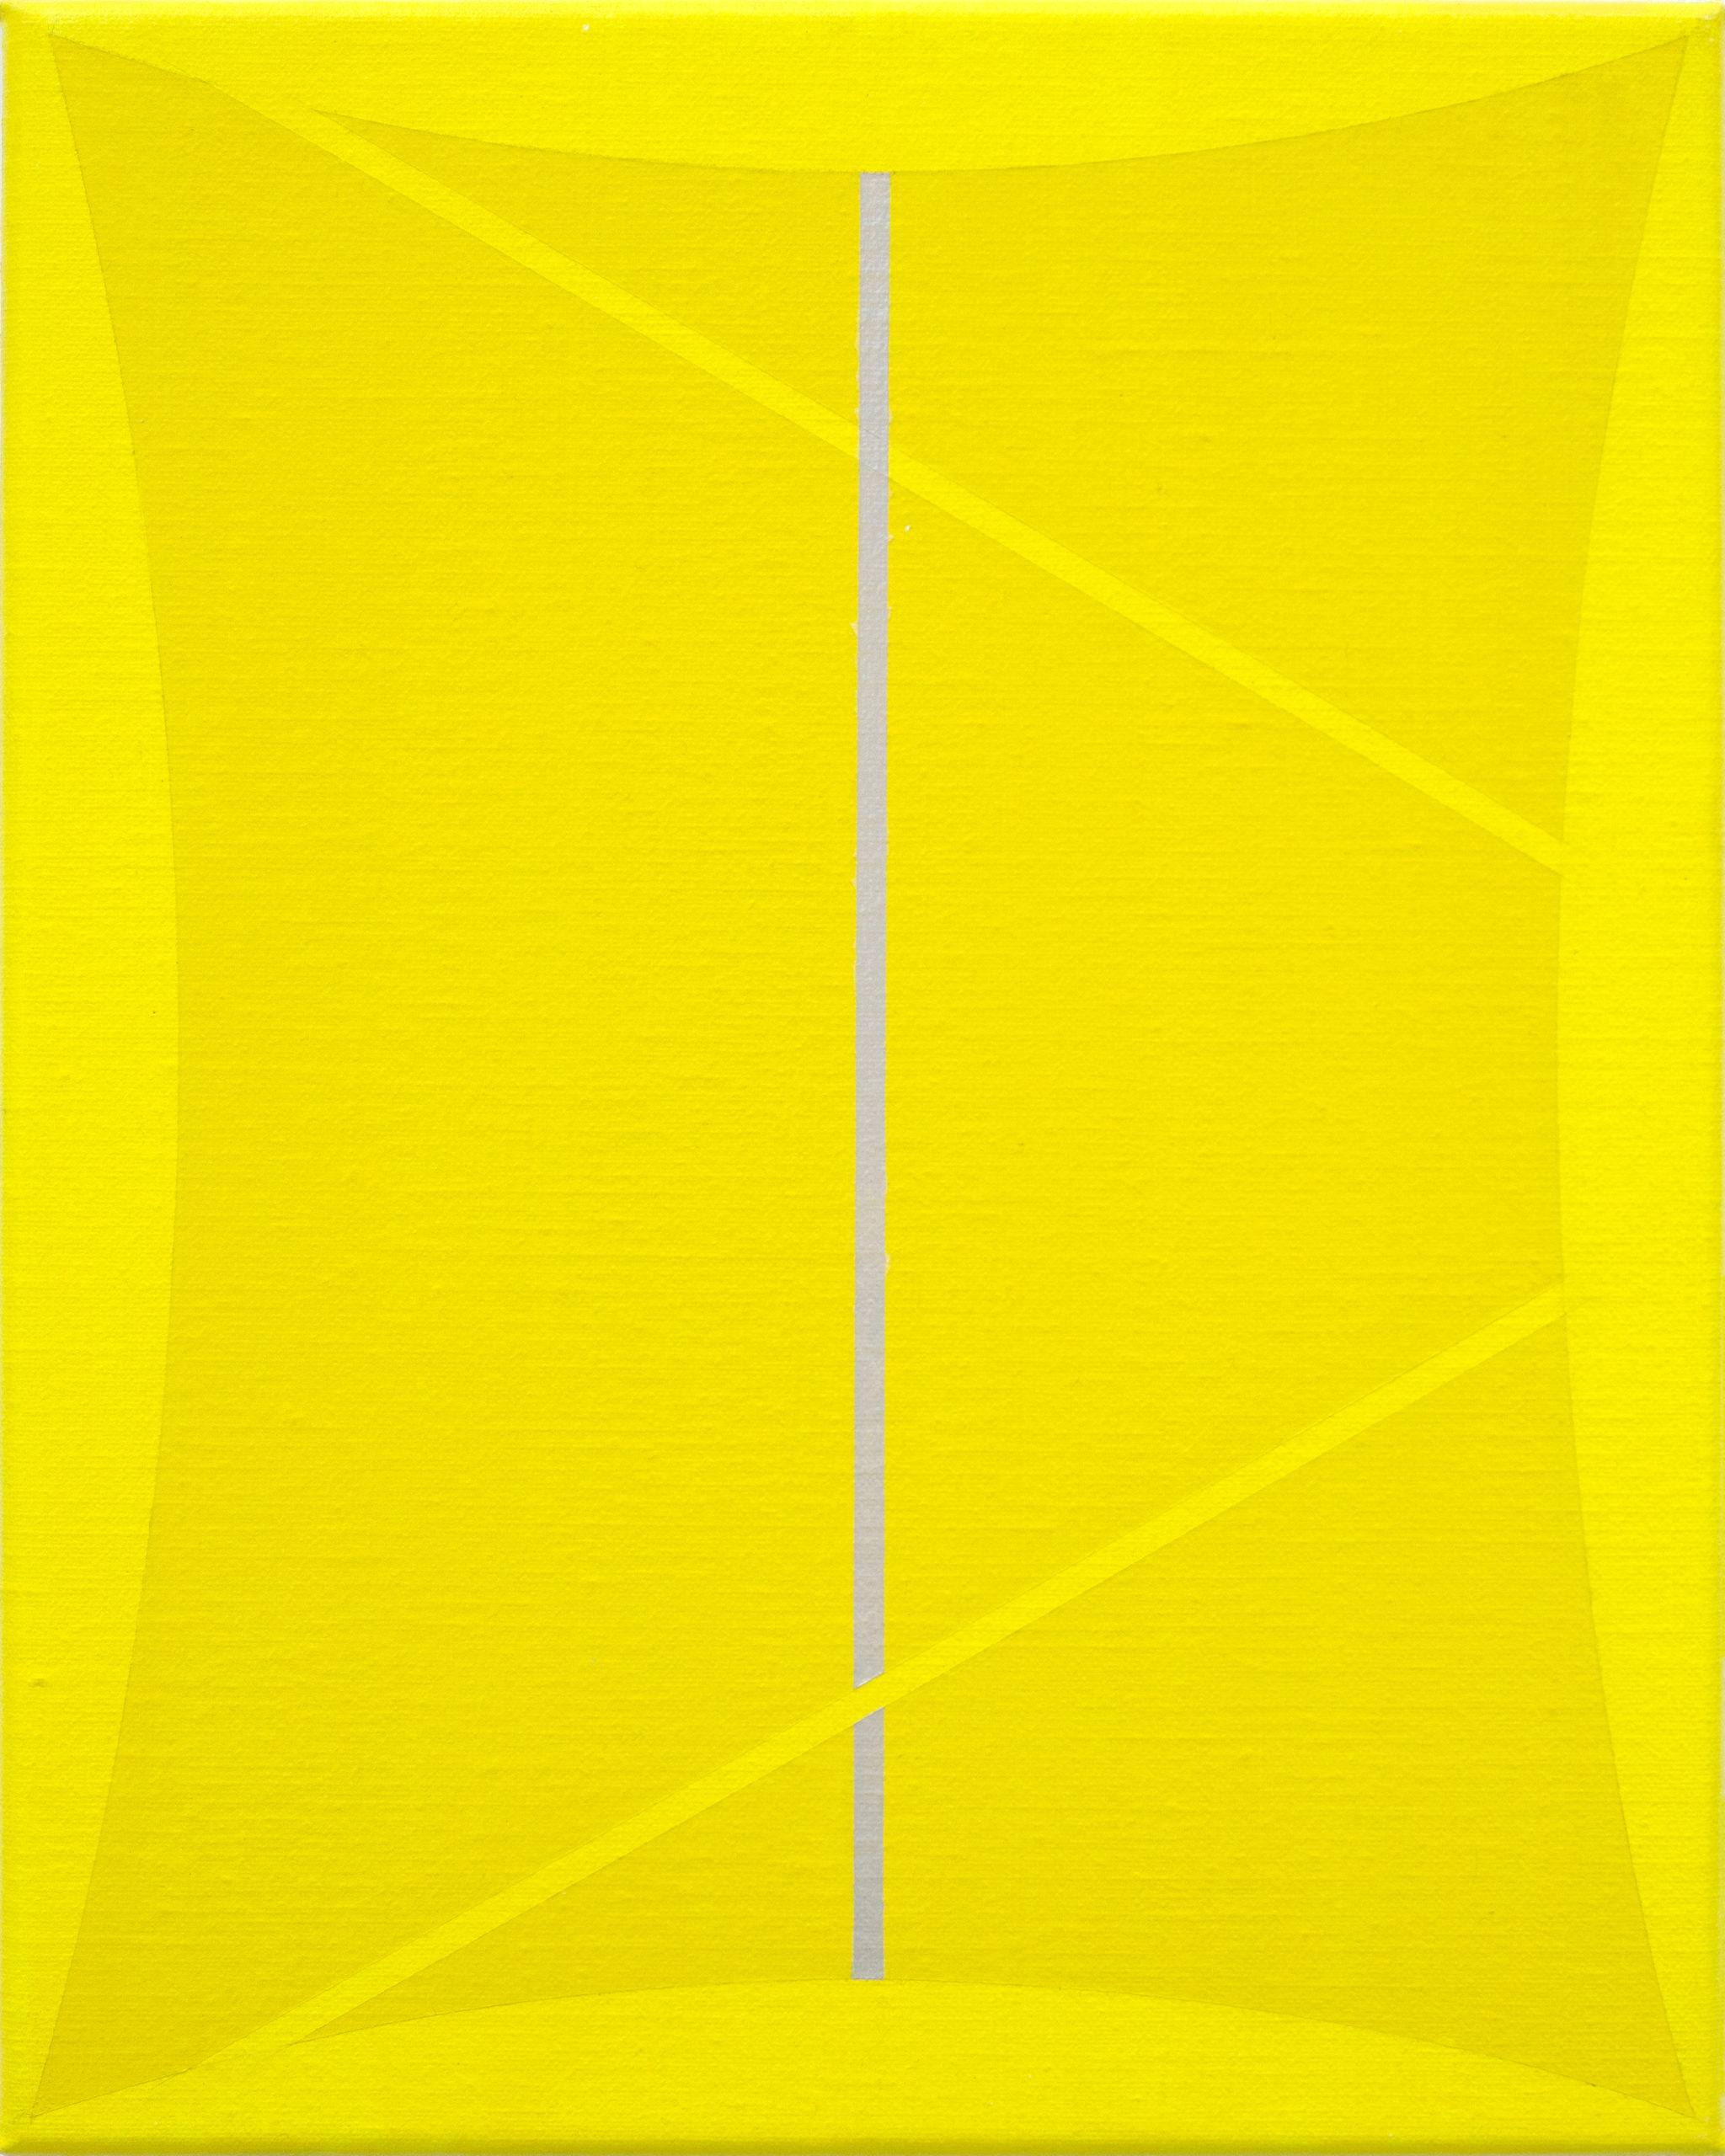 Untitled (Two Yellows and Silver)